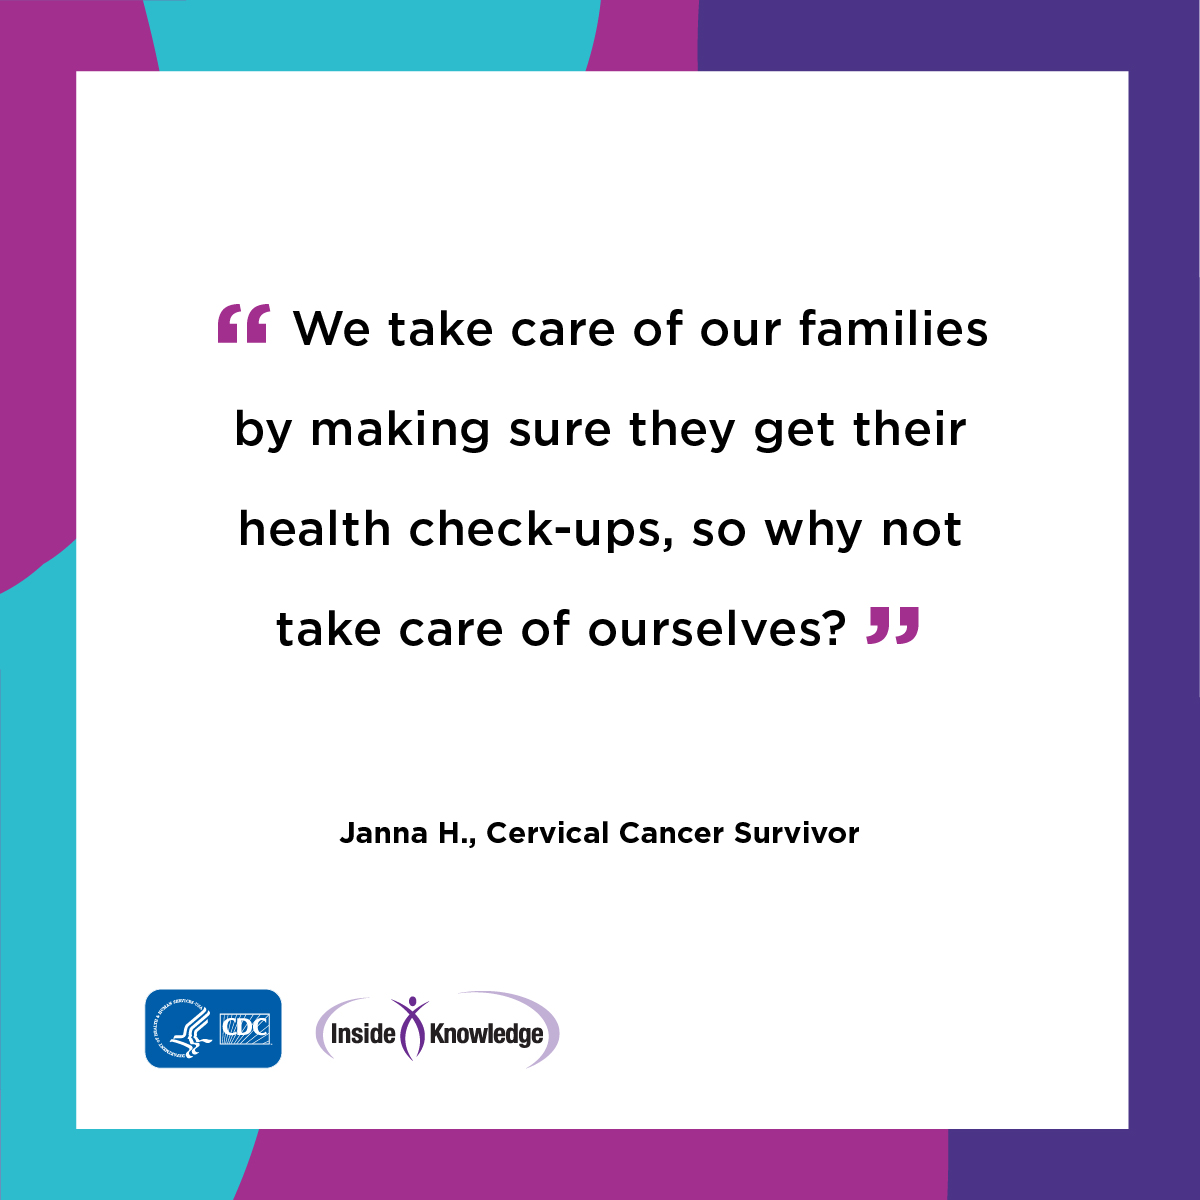 We take care of our families by making sure they by making sure they get their health check-ups, so why not take care of ourselves? Janna H. Cervical Cancer Survivor